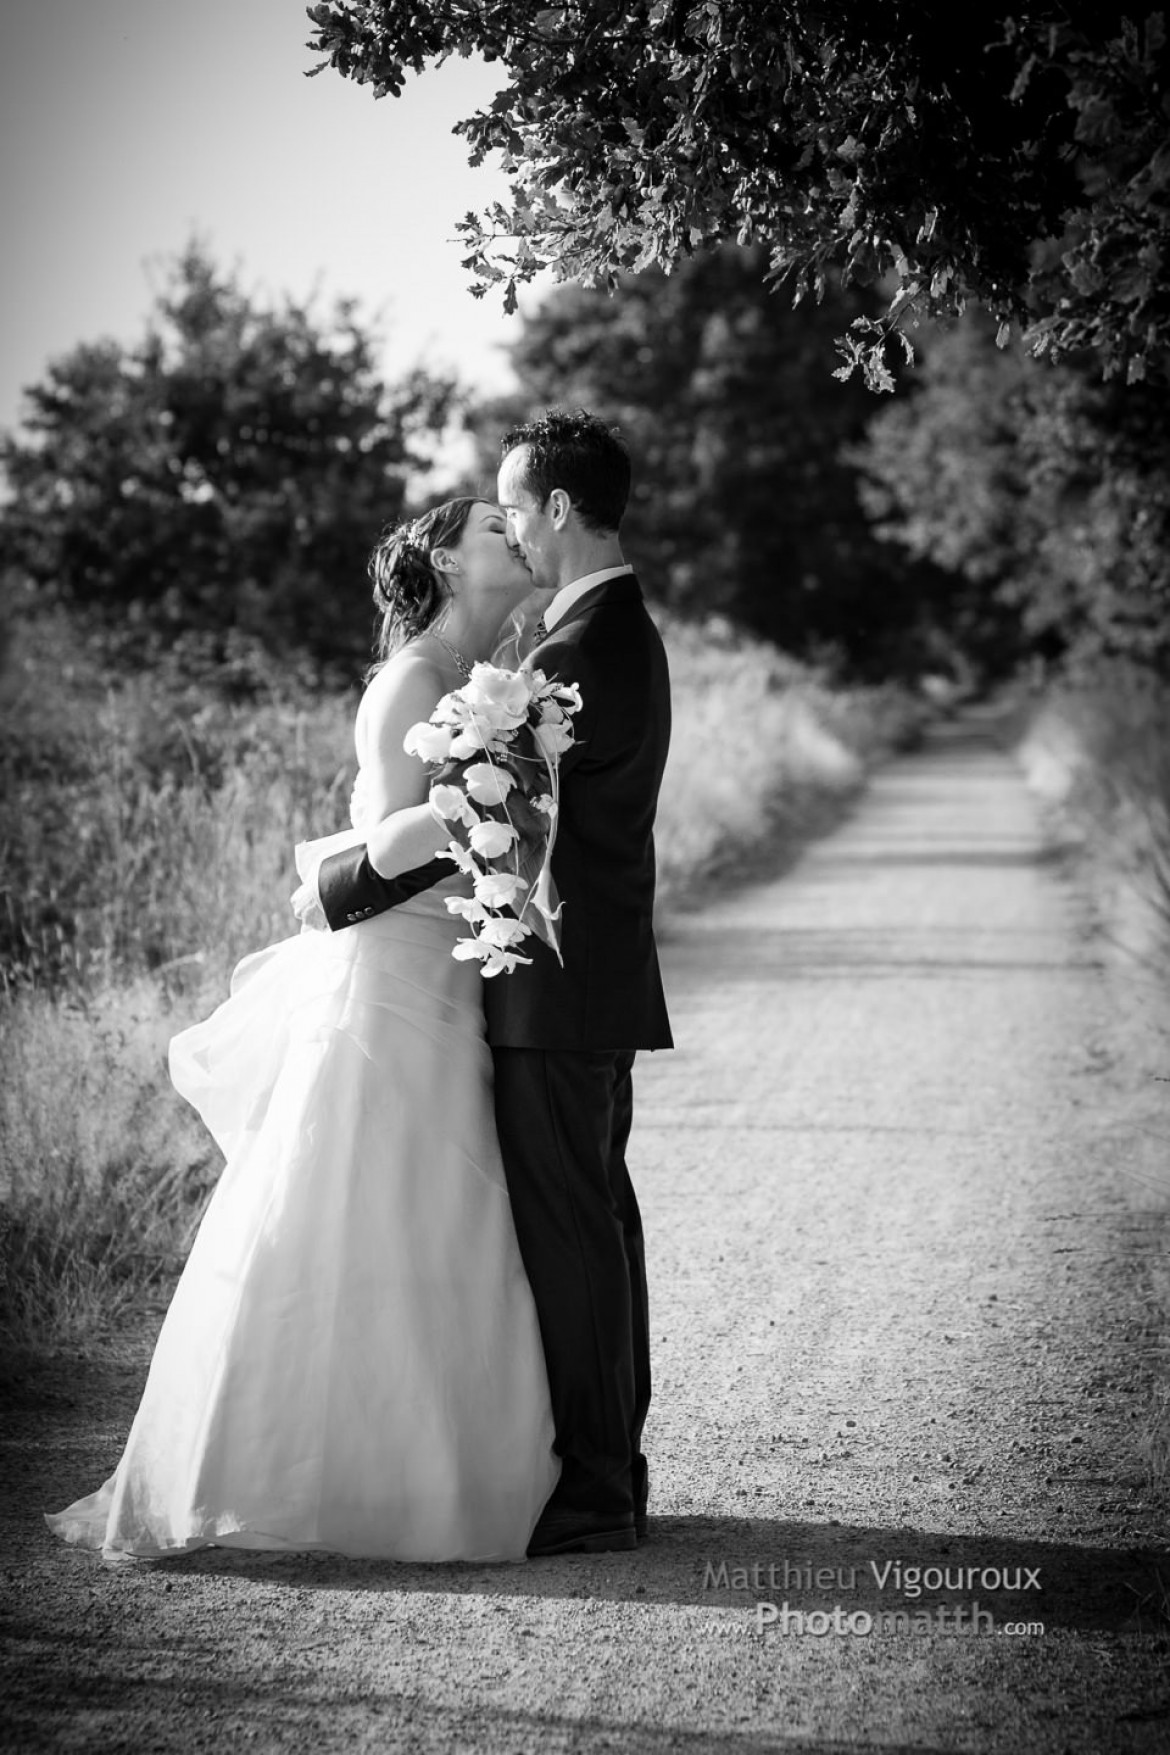 mariage noir blanc photomatth matthieu vigouroux photographe mariage portrait. Black Bedroom Furniture Sets. Home Design Ideas